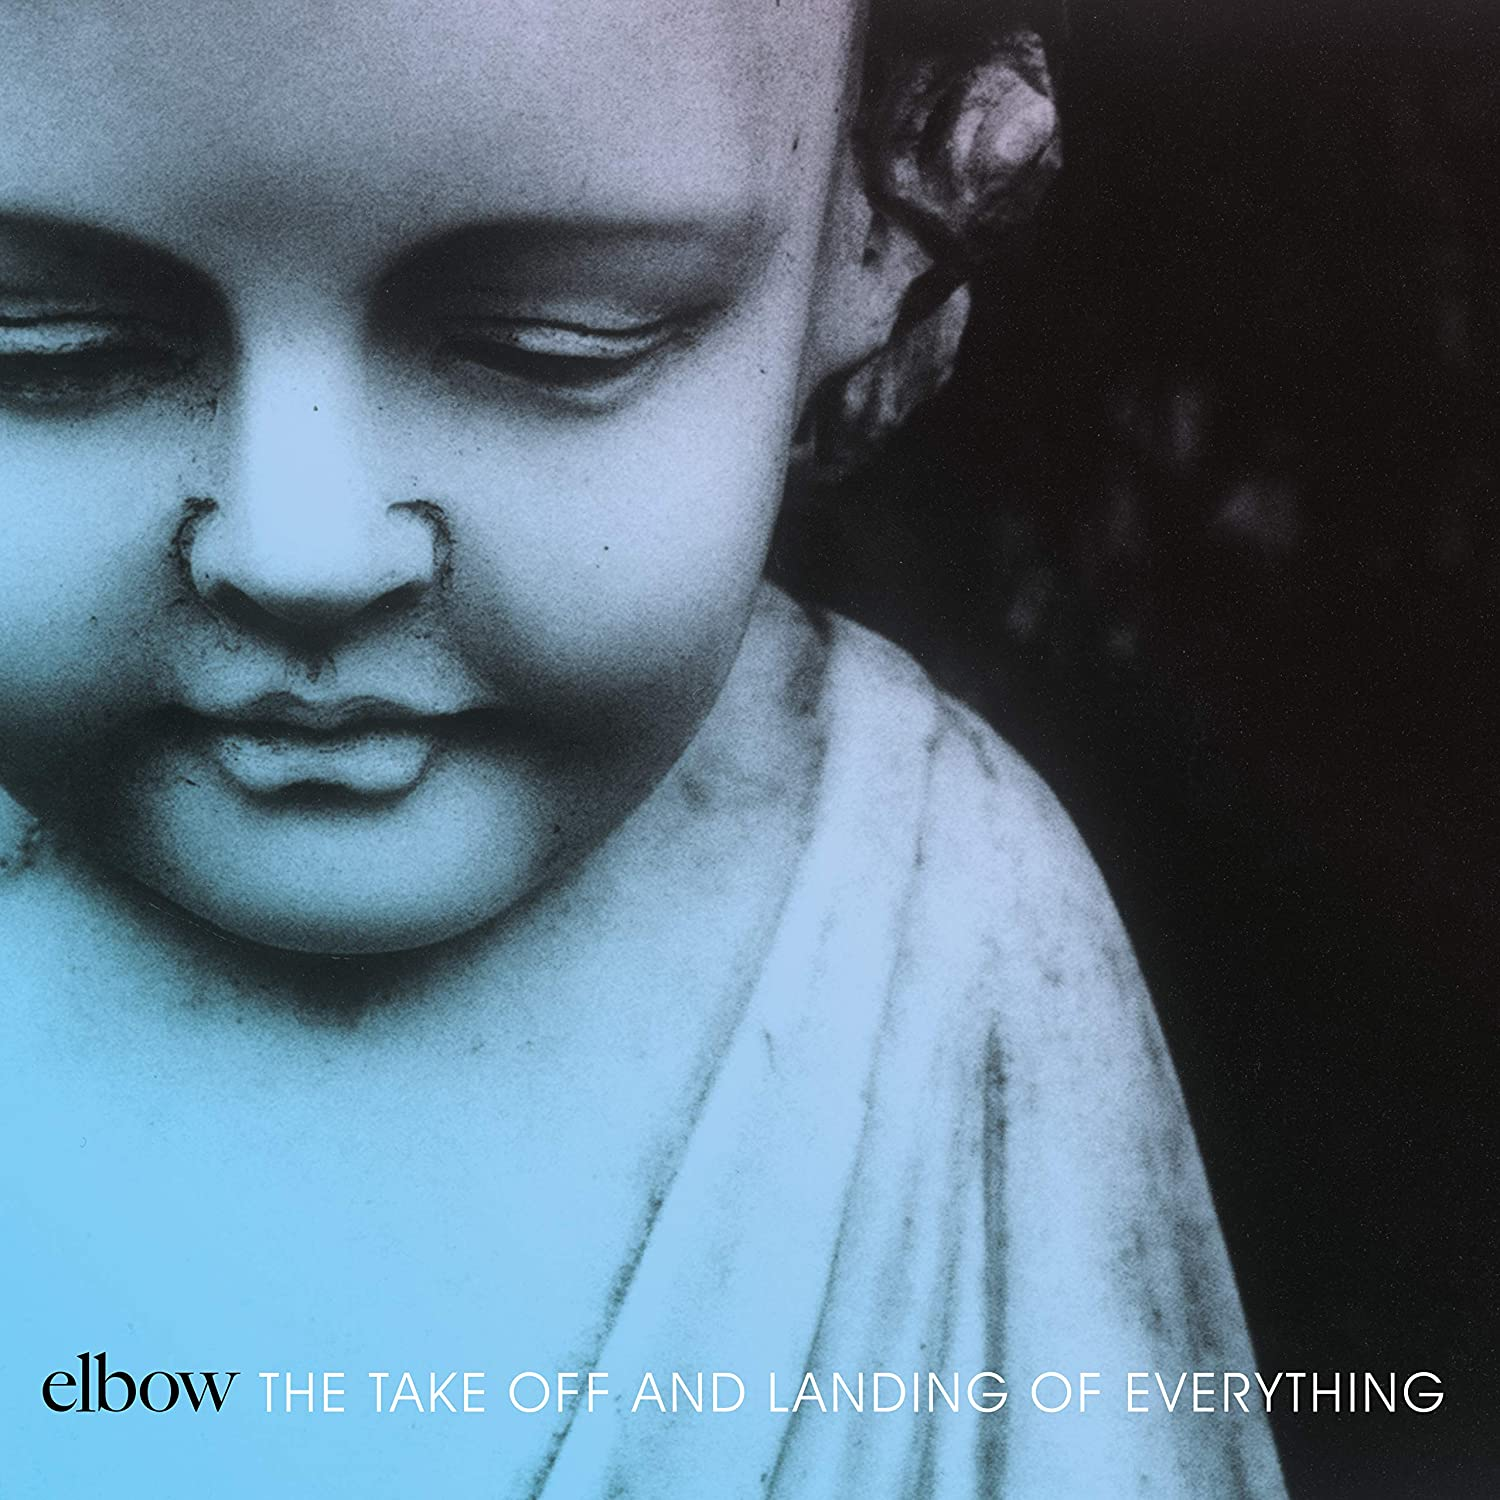 Elbow - The Take Off And Landing Of Everything [2LP]